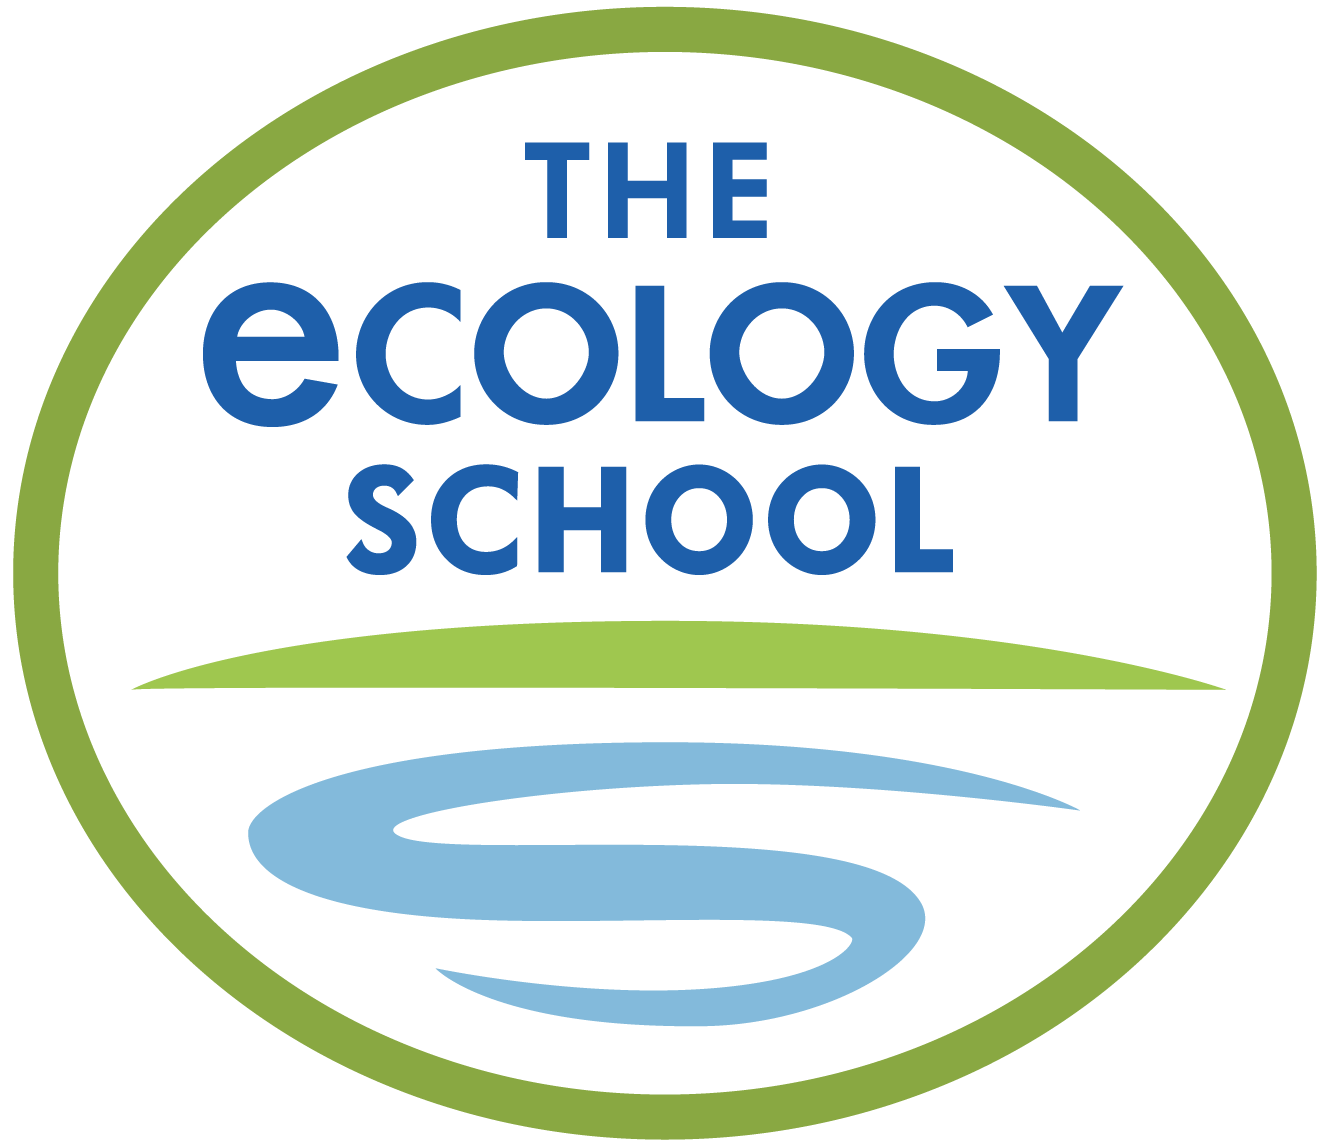 The Ecology School